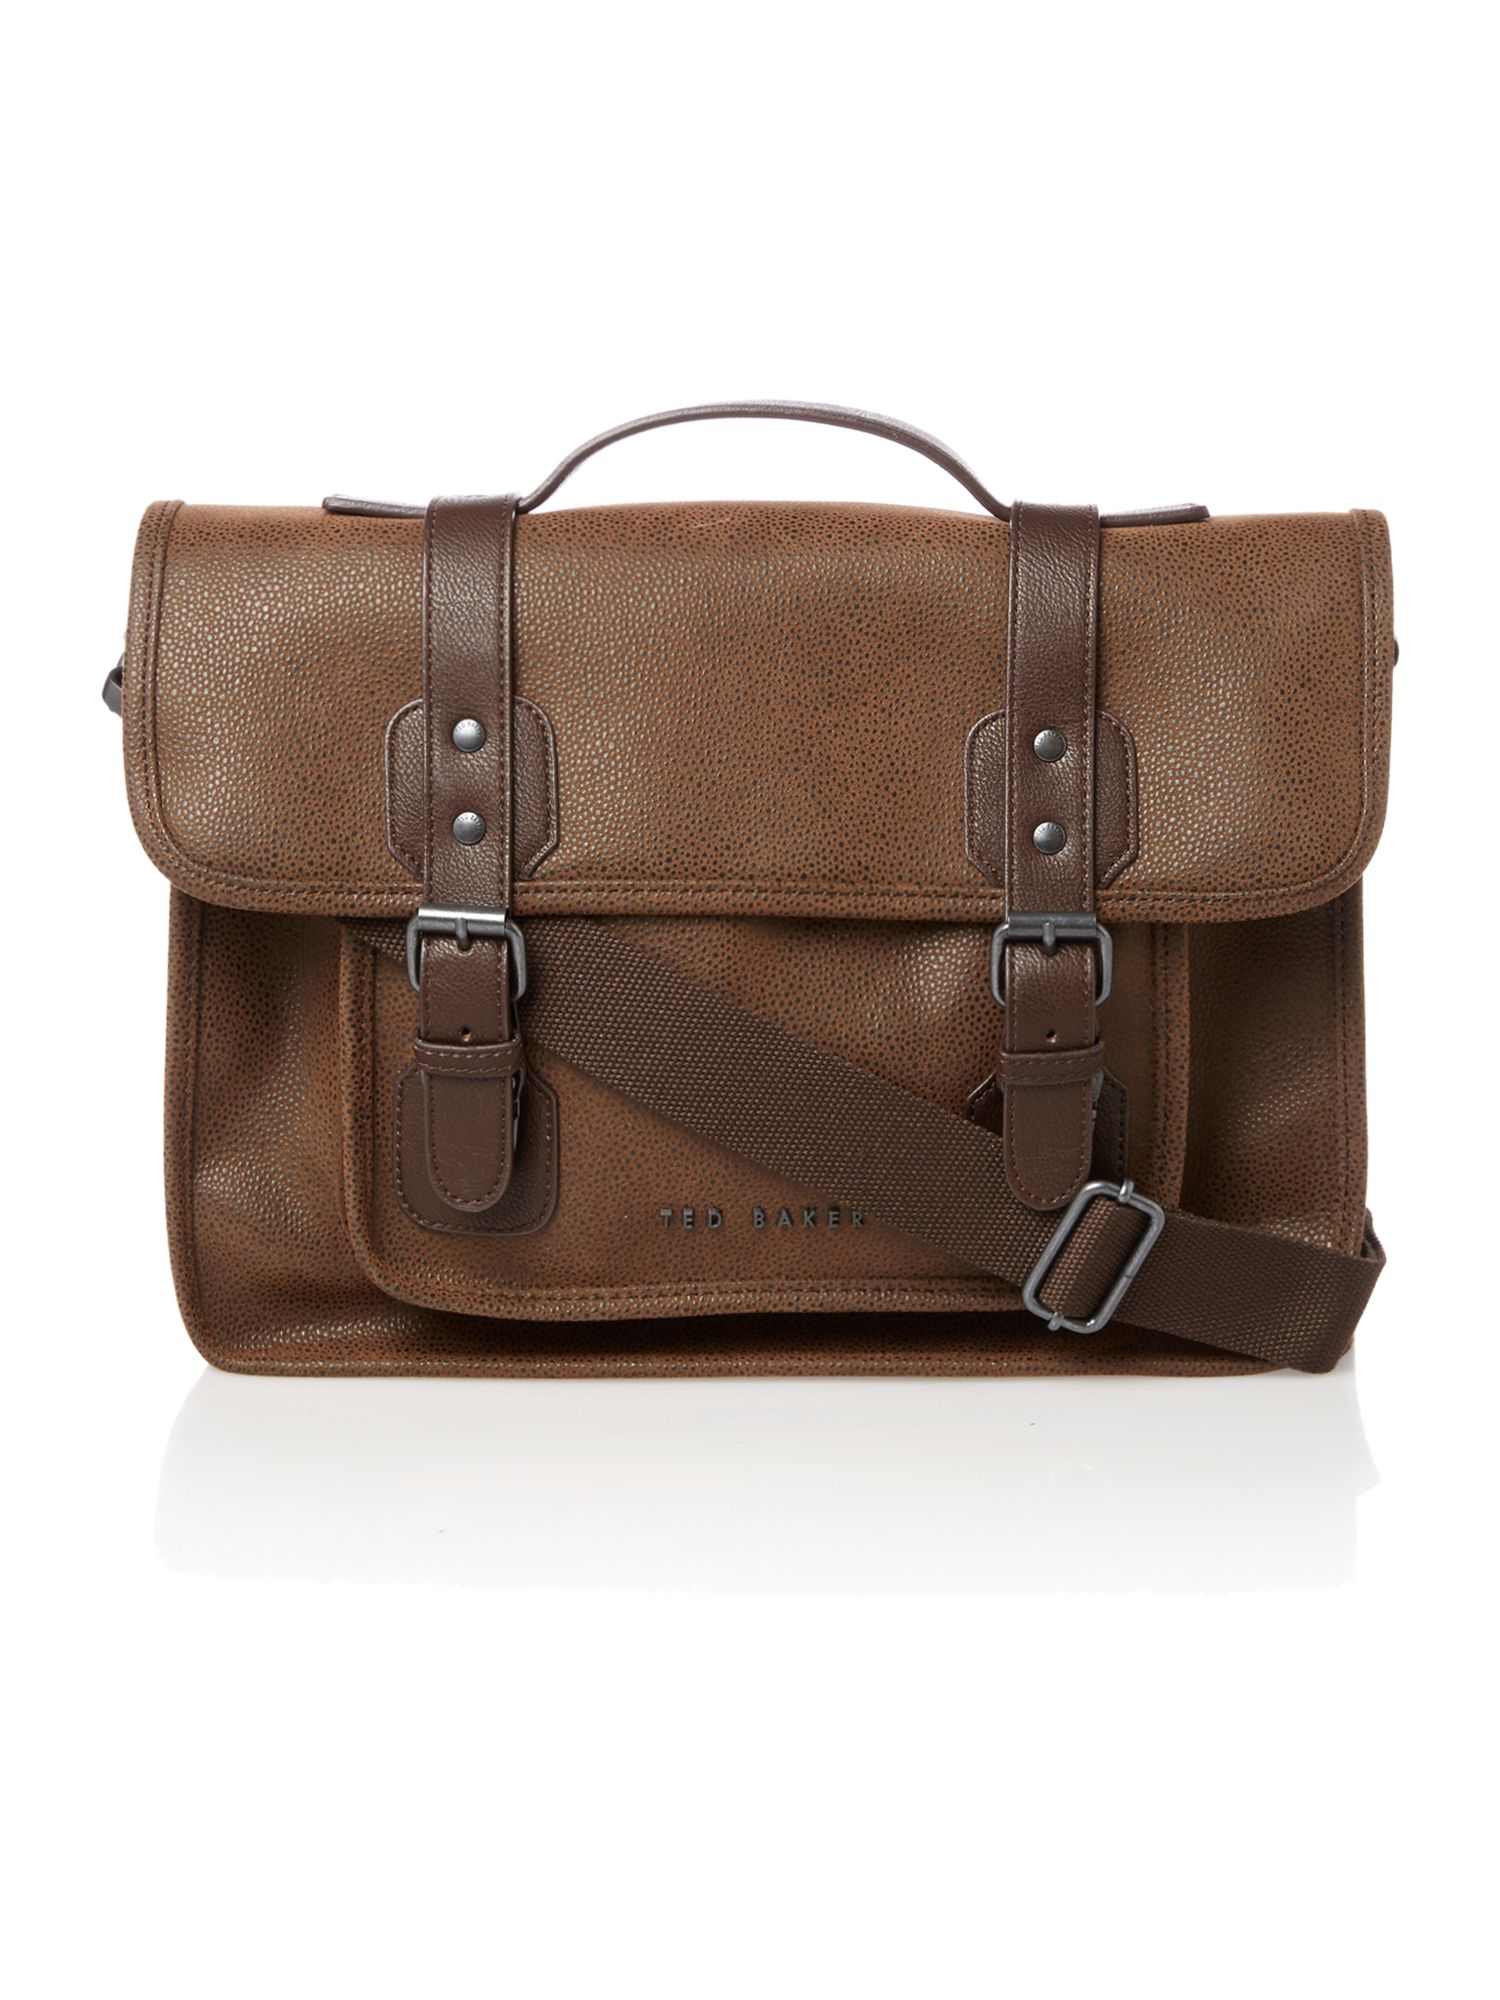 Scotch grain satchel